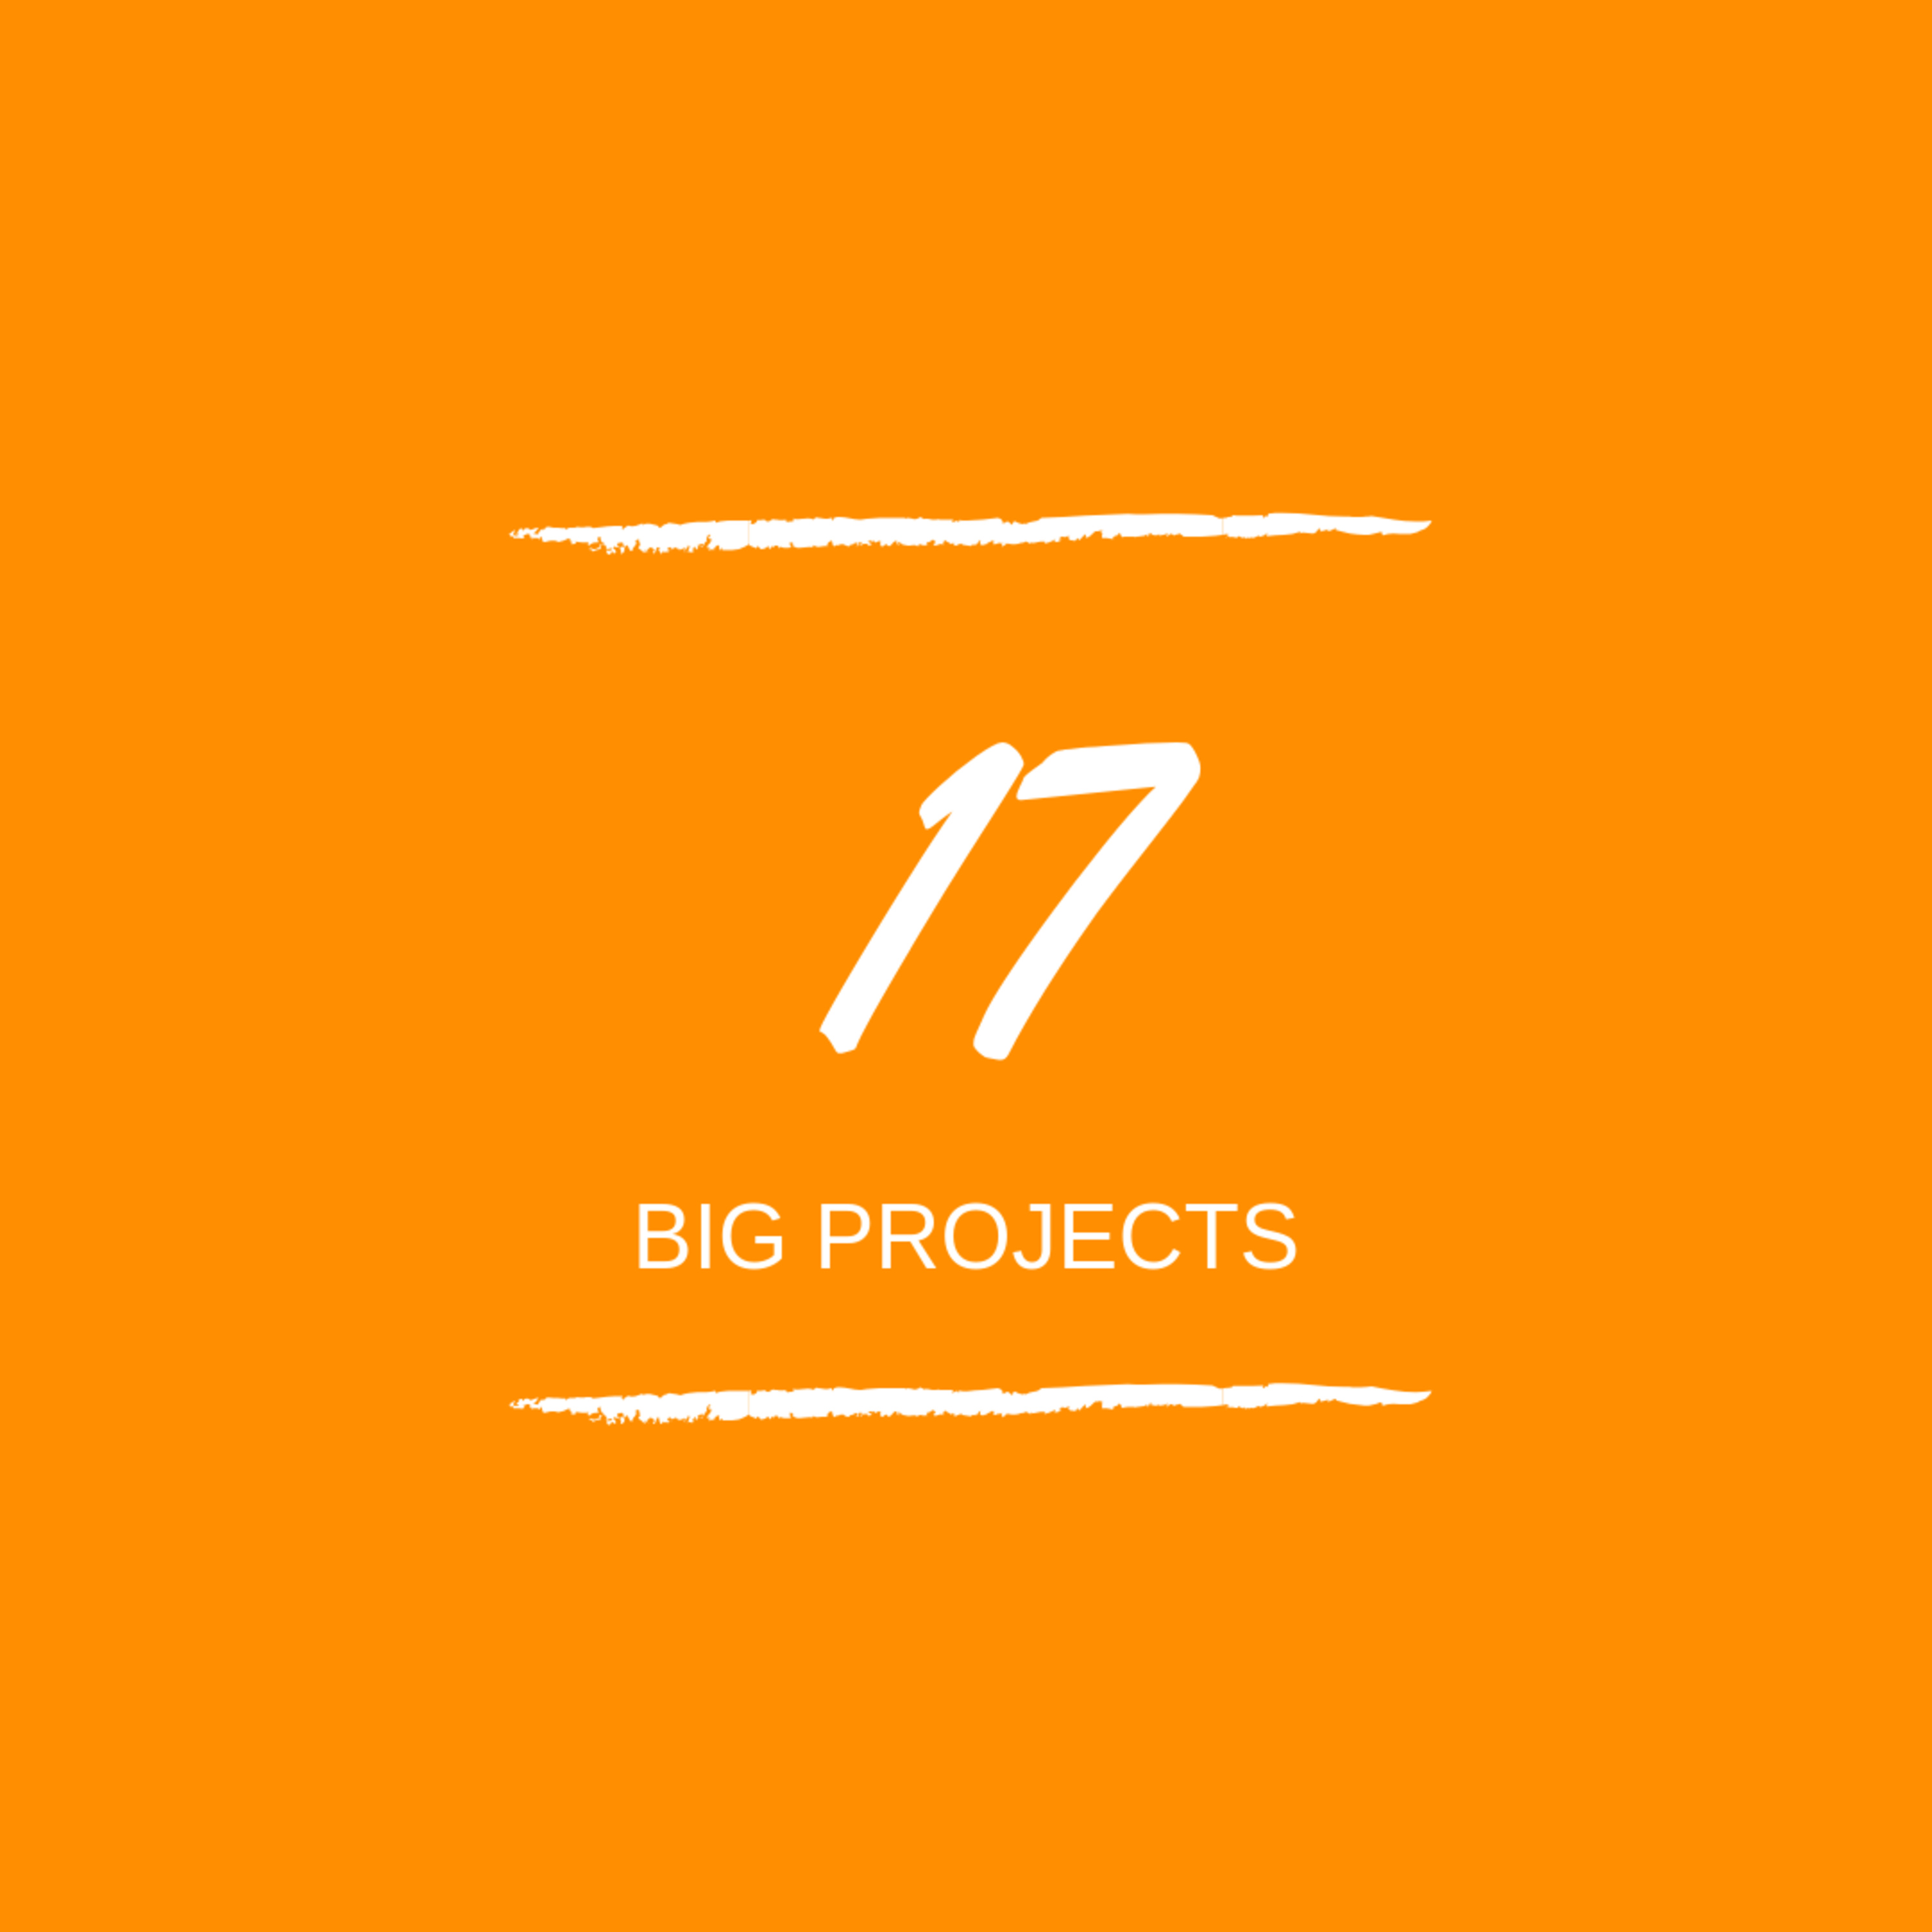 Day 17 : 🏗 Big Projects!